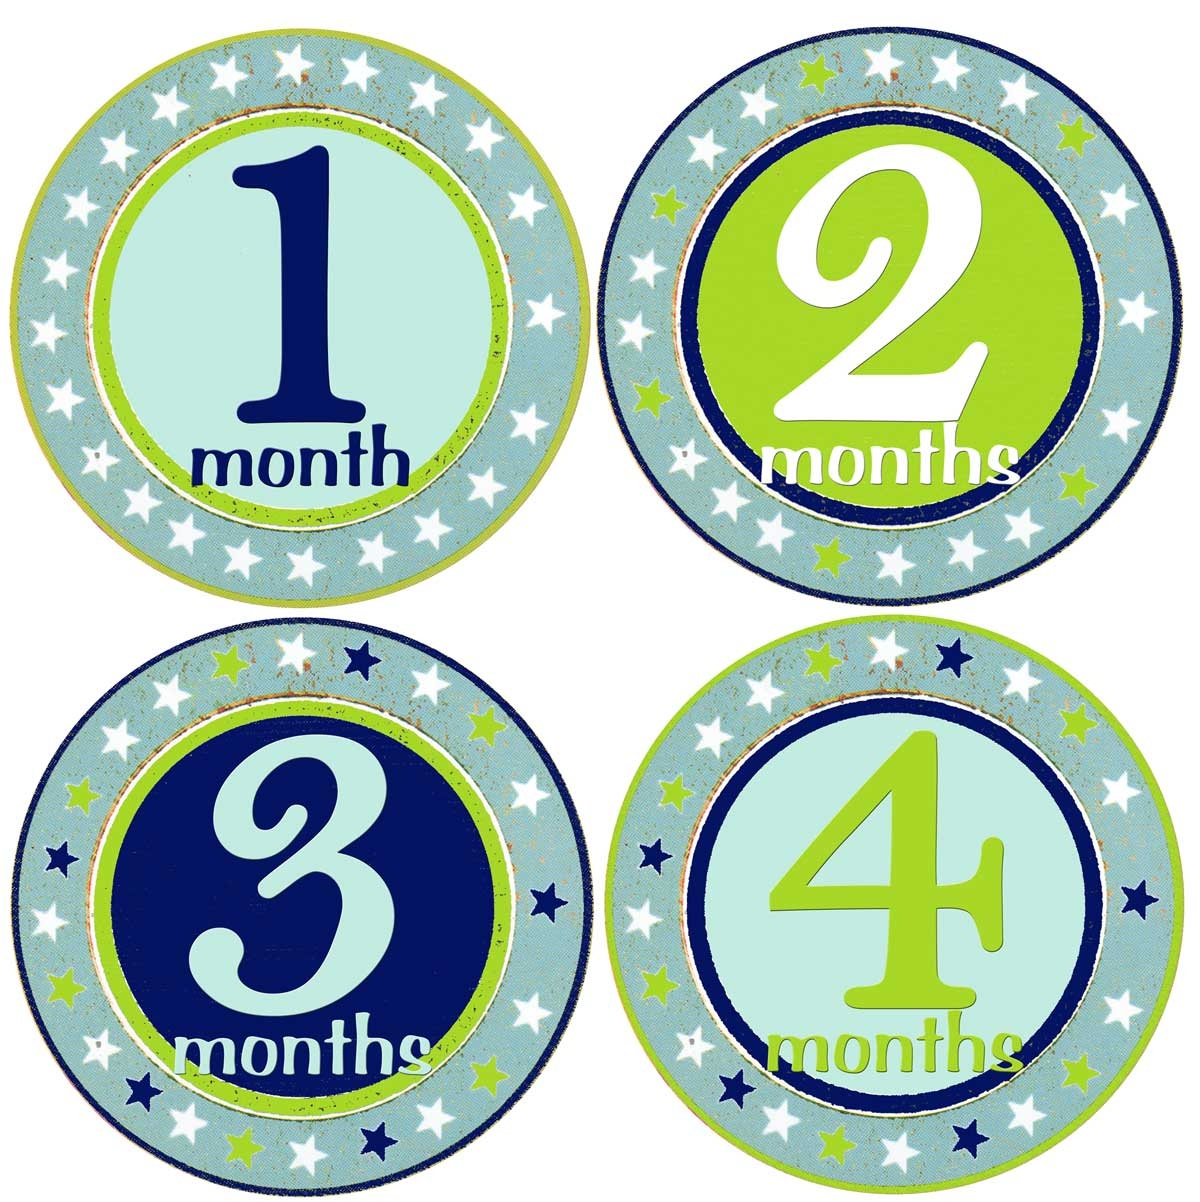 Free Printable Baby Month Stickers (75+ Images In Collection) Page 2 - Free Printable Baby Month Stickers